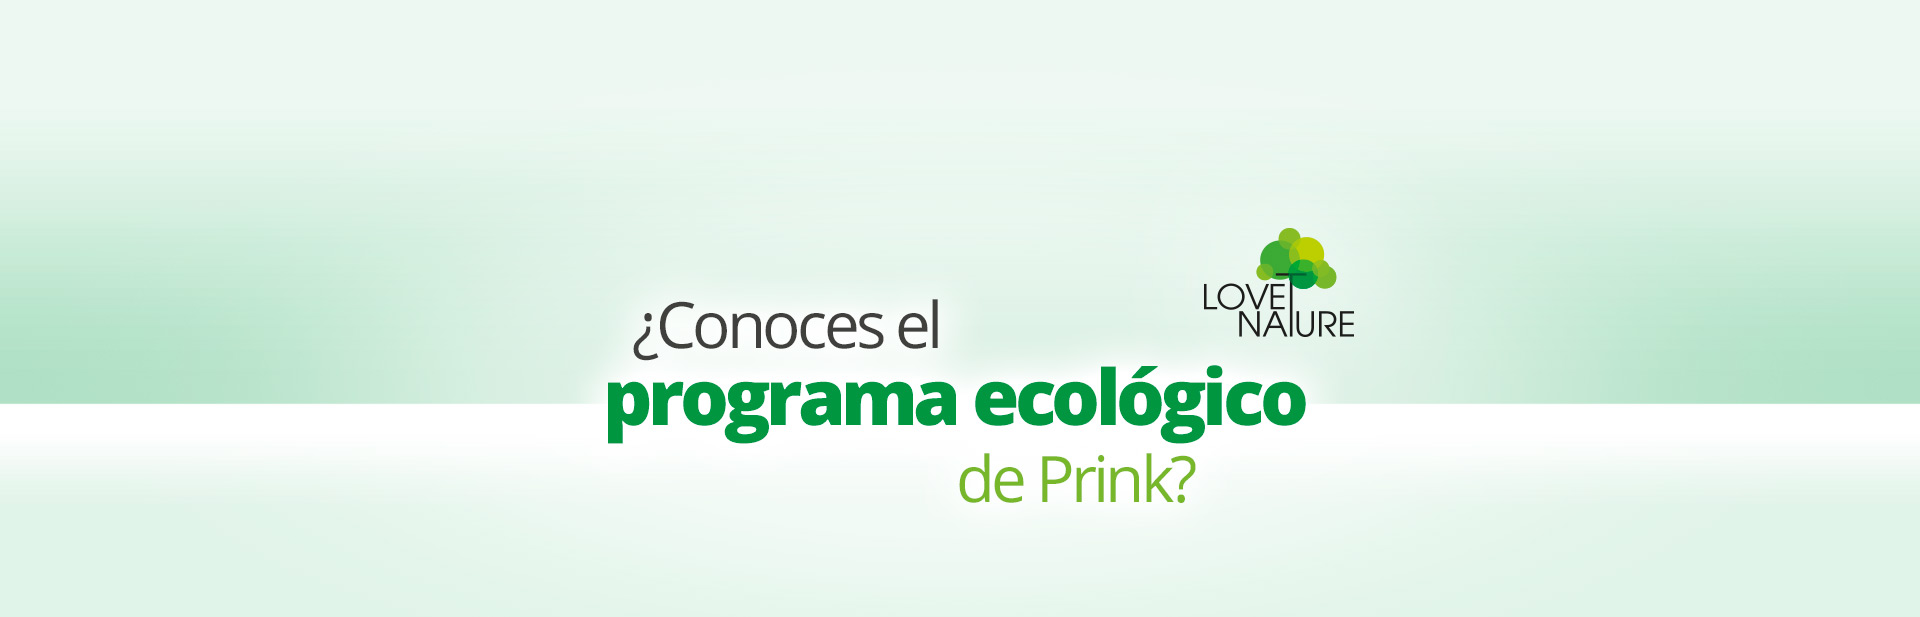 programma-ecologico-Prink-LOVE-NATURE-SLIDE